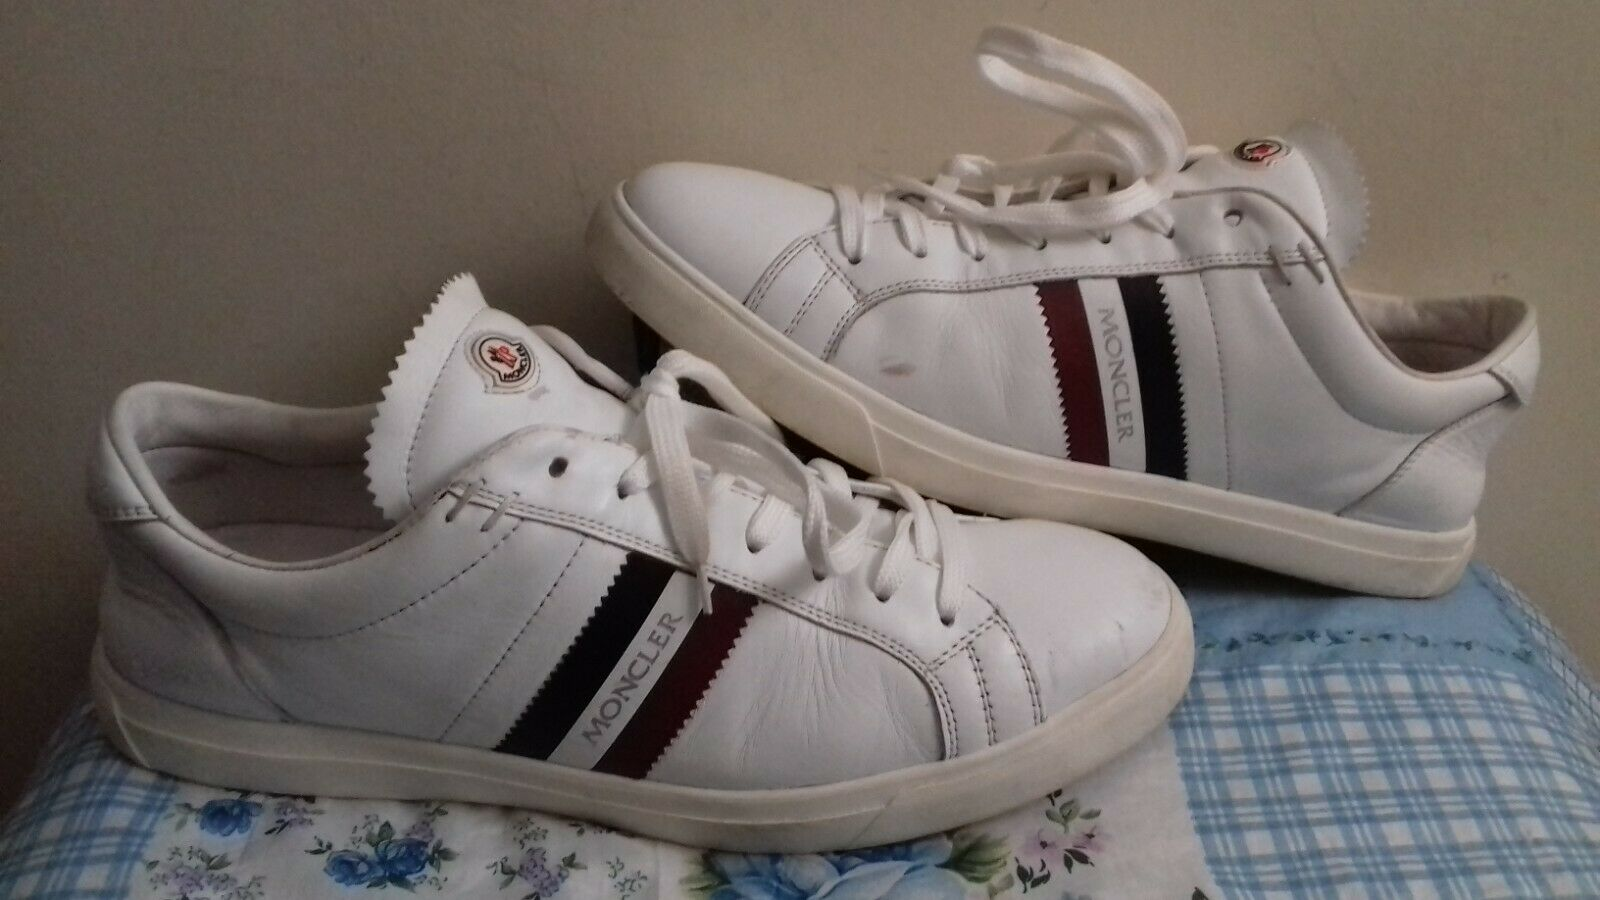 Moncler White Leathers Trainers UK 10 EU 44 VGC